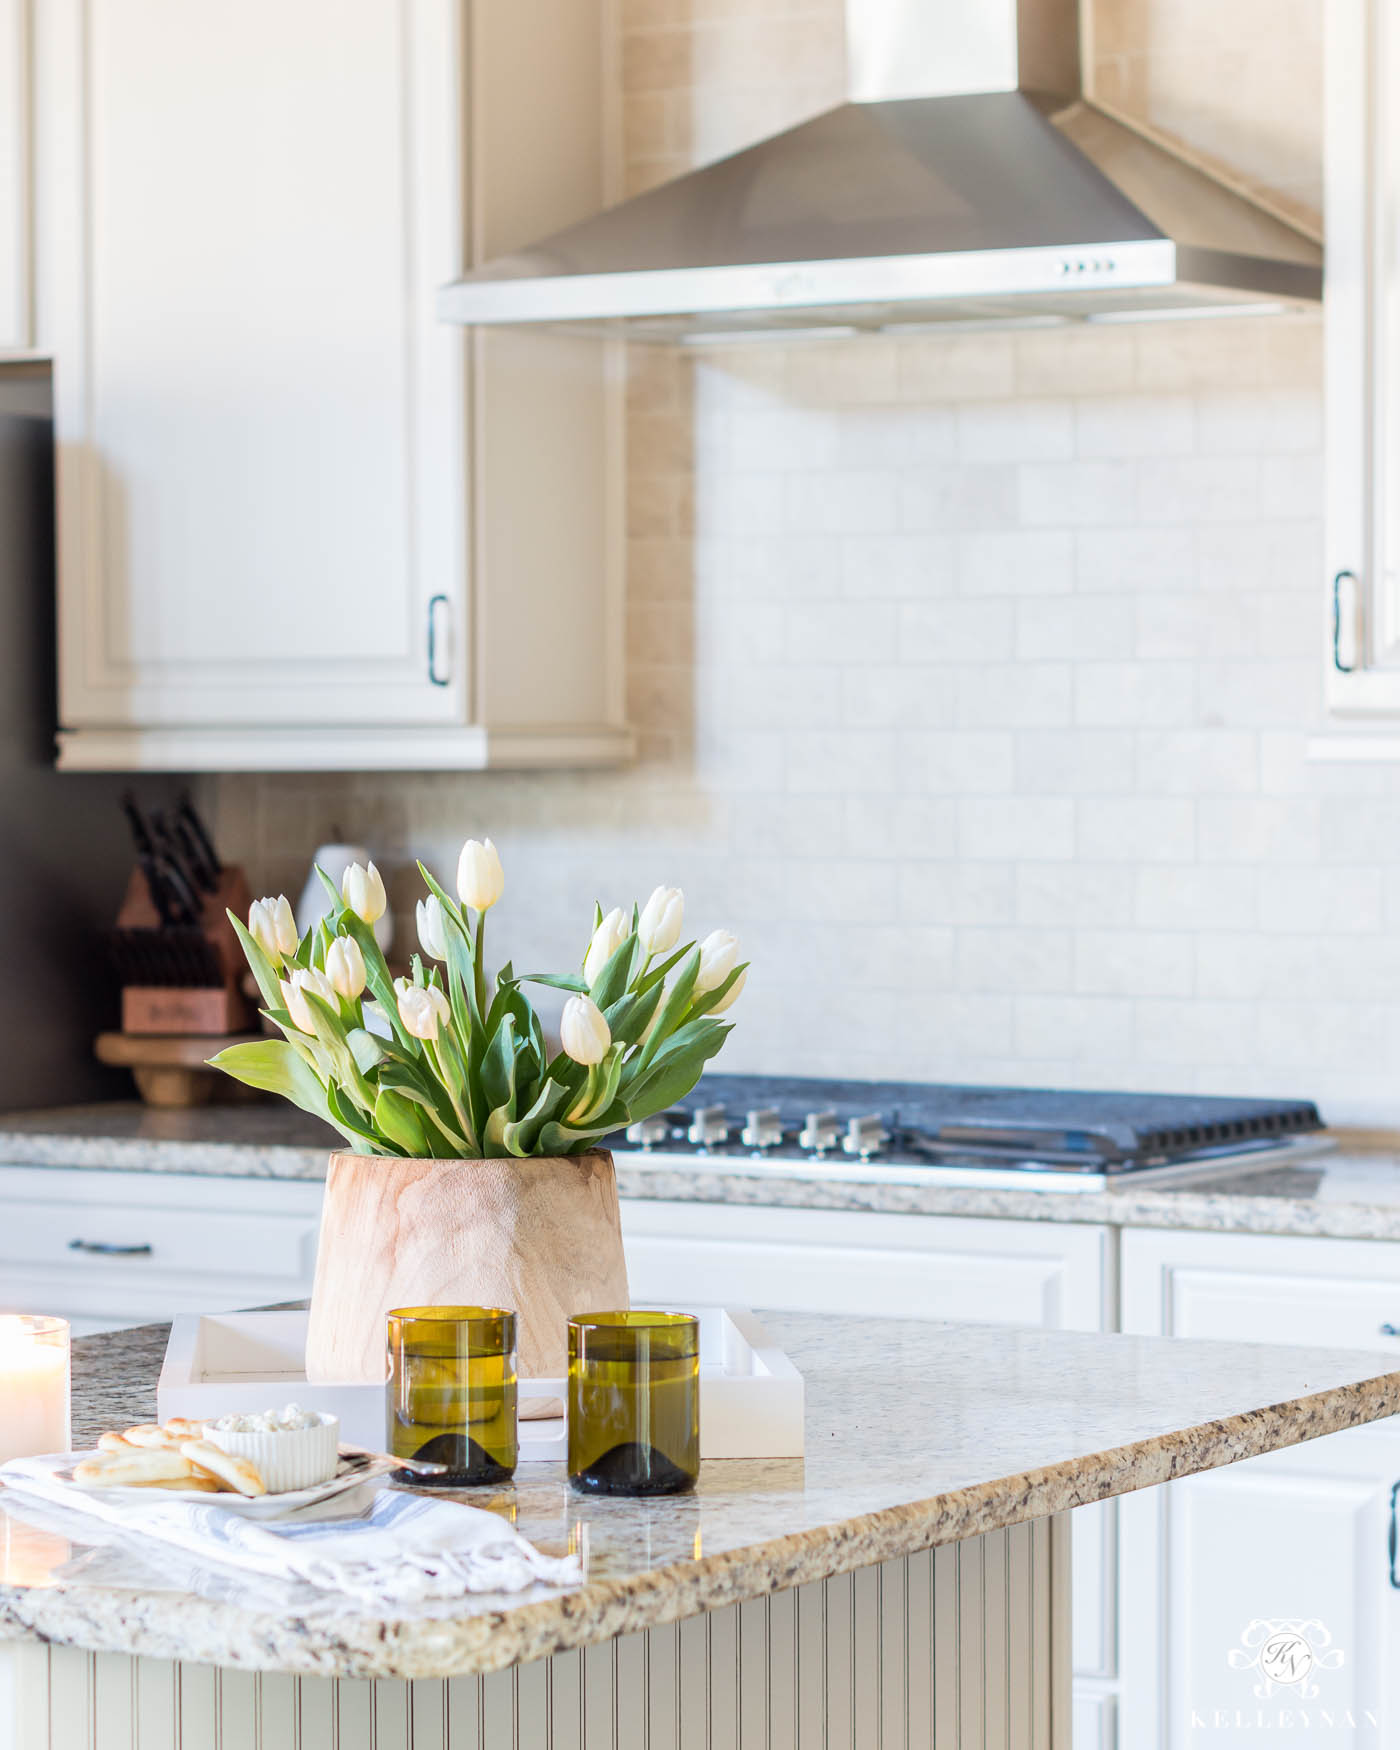 Kitchen Island Styling Tips and Ideas with Wooden Planter for Flowers